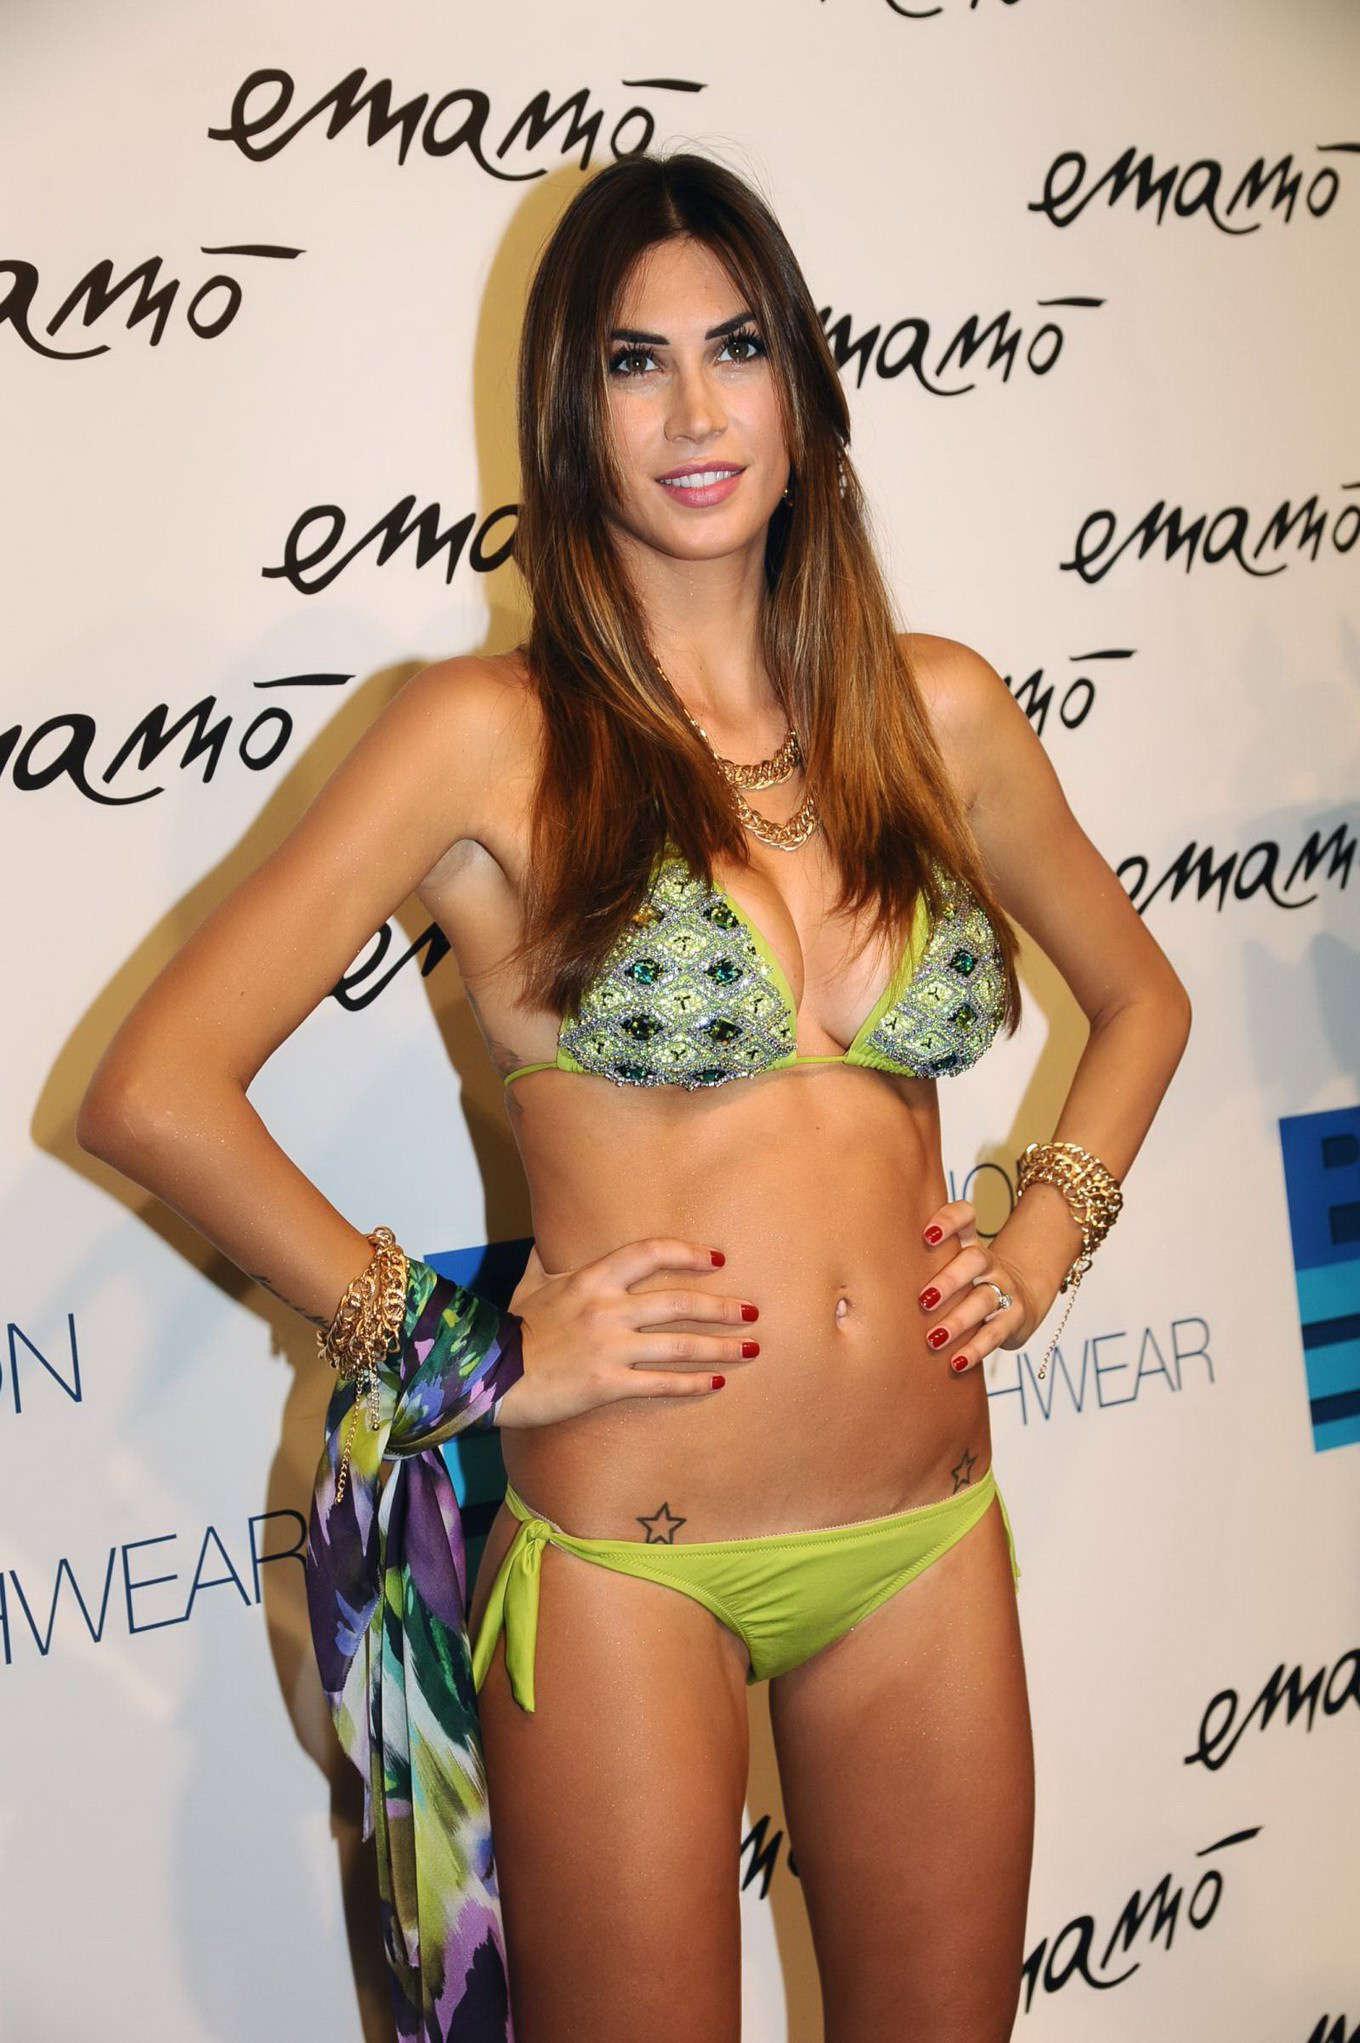 melissa satta showing off her hot bikini body at the emamo fashion